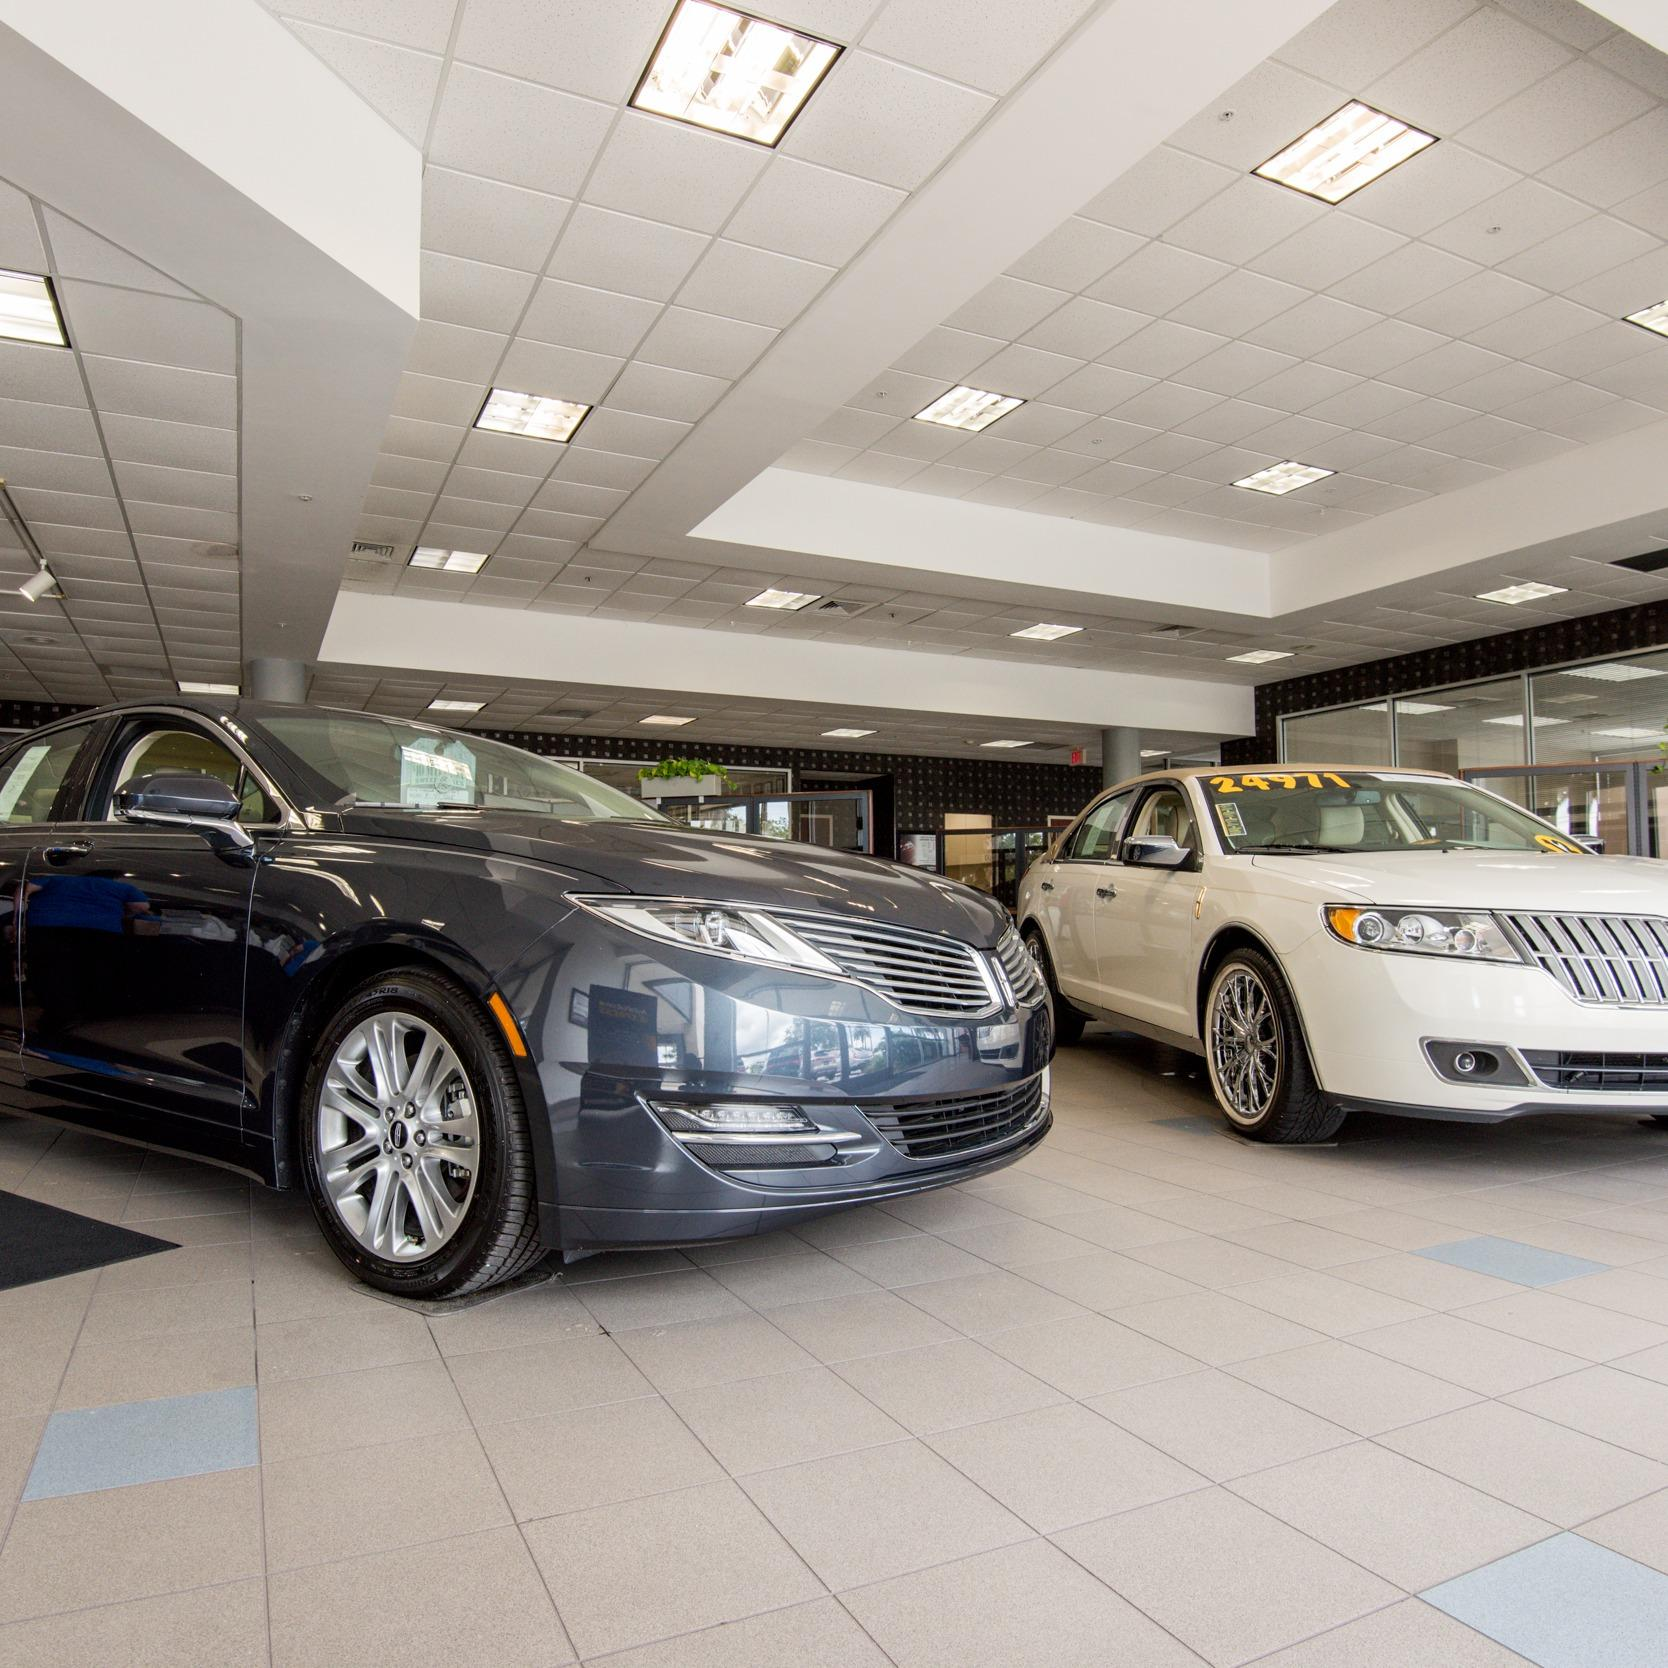 AutoNation Lincoln Clearwater, Clearwater Florida (FL